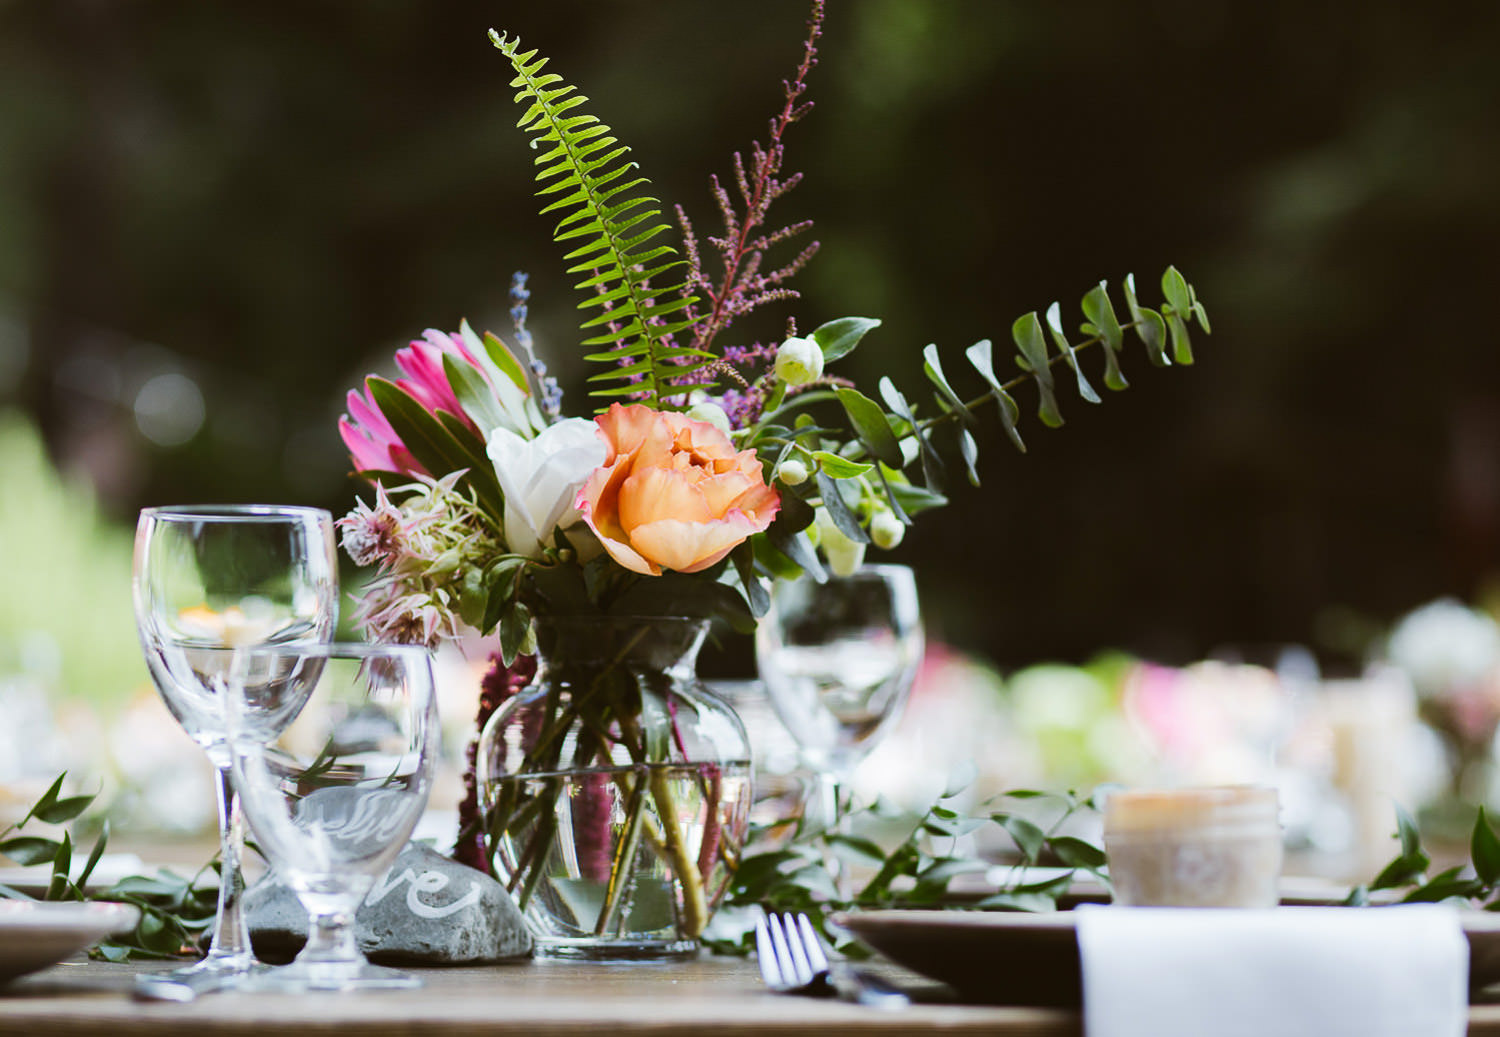 Rustic chic wedding decor for a romantic wedding into the woods | Photo: Camilla Anchisi